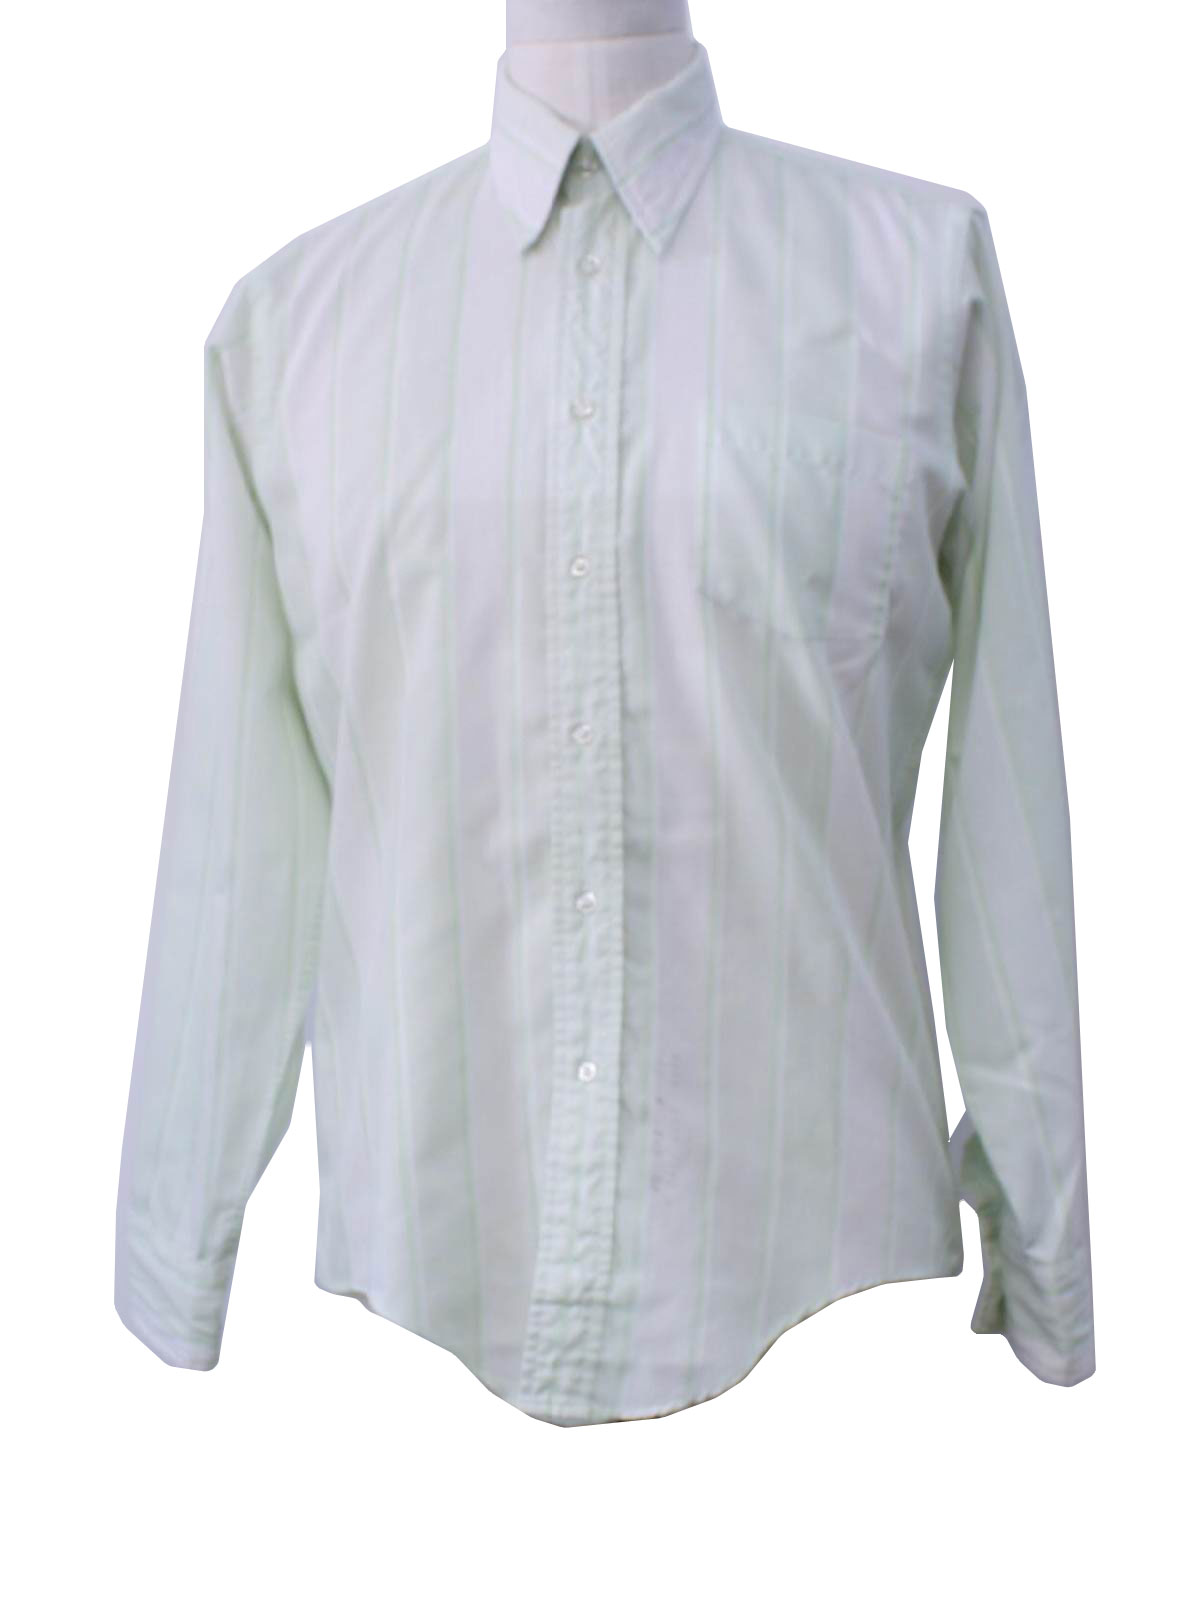 Vintage 70s Shirt 70s No Label Mens White Background With Mint